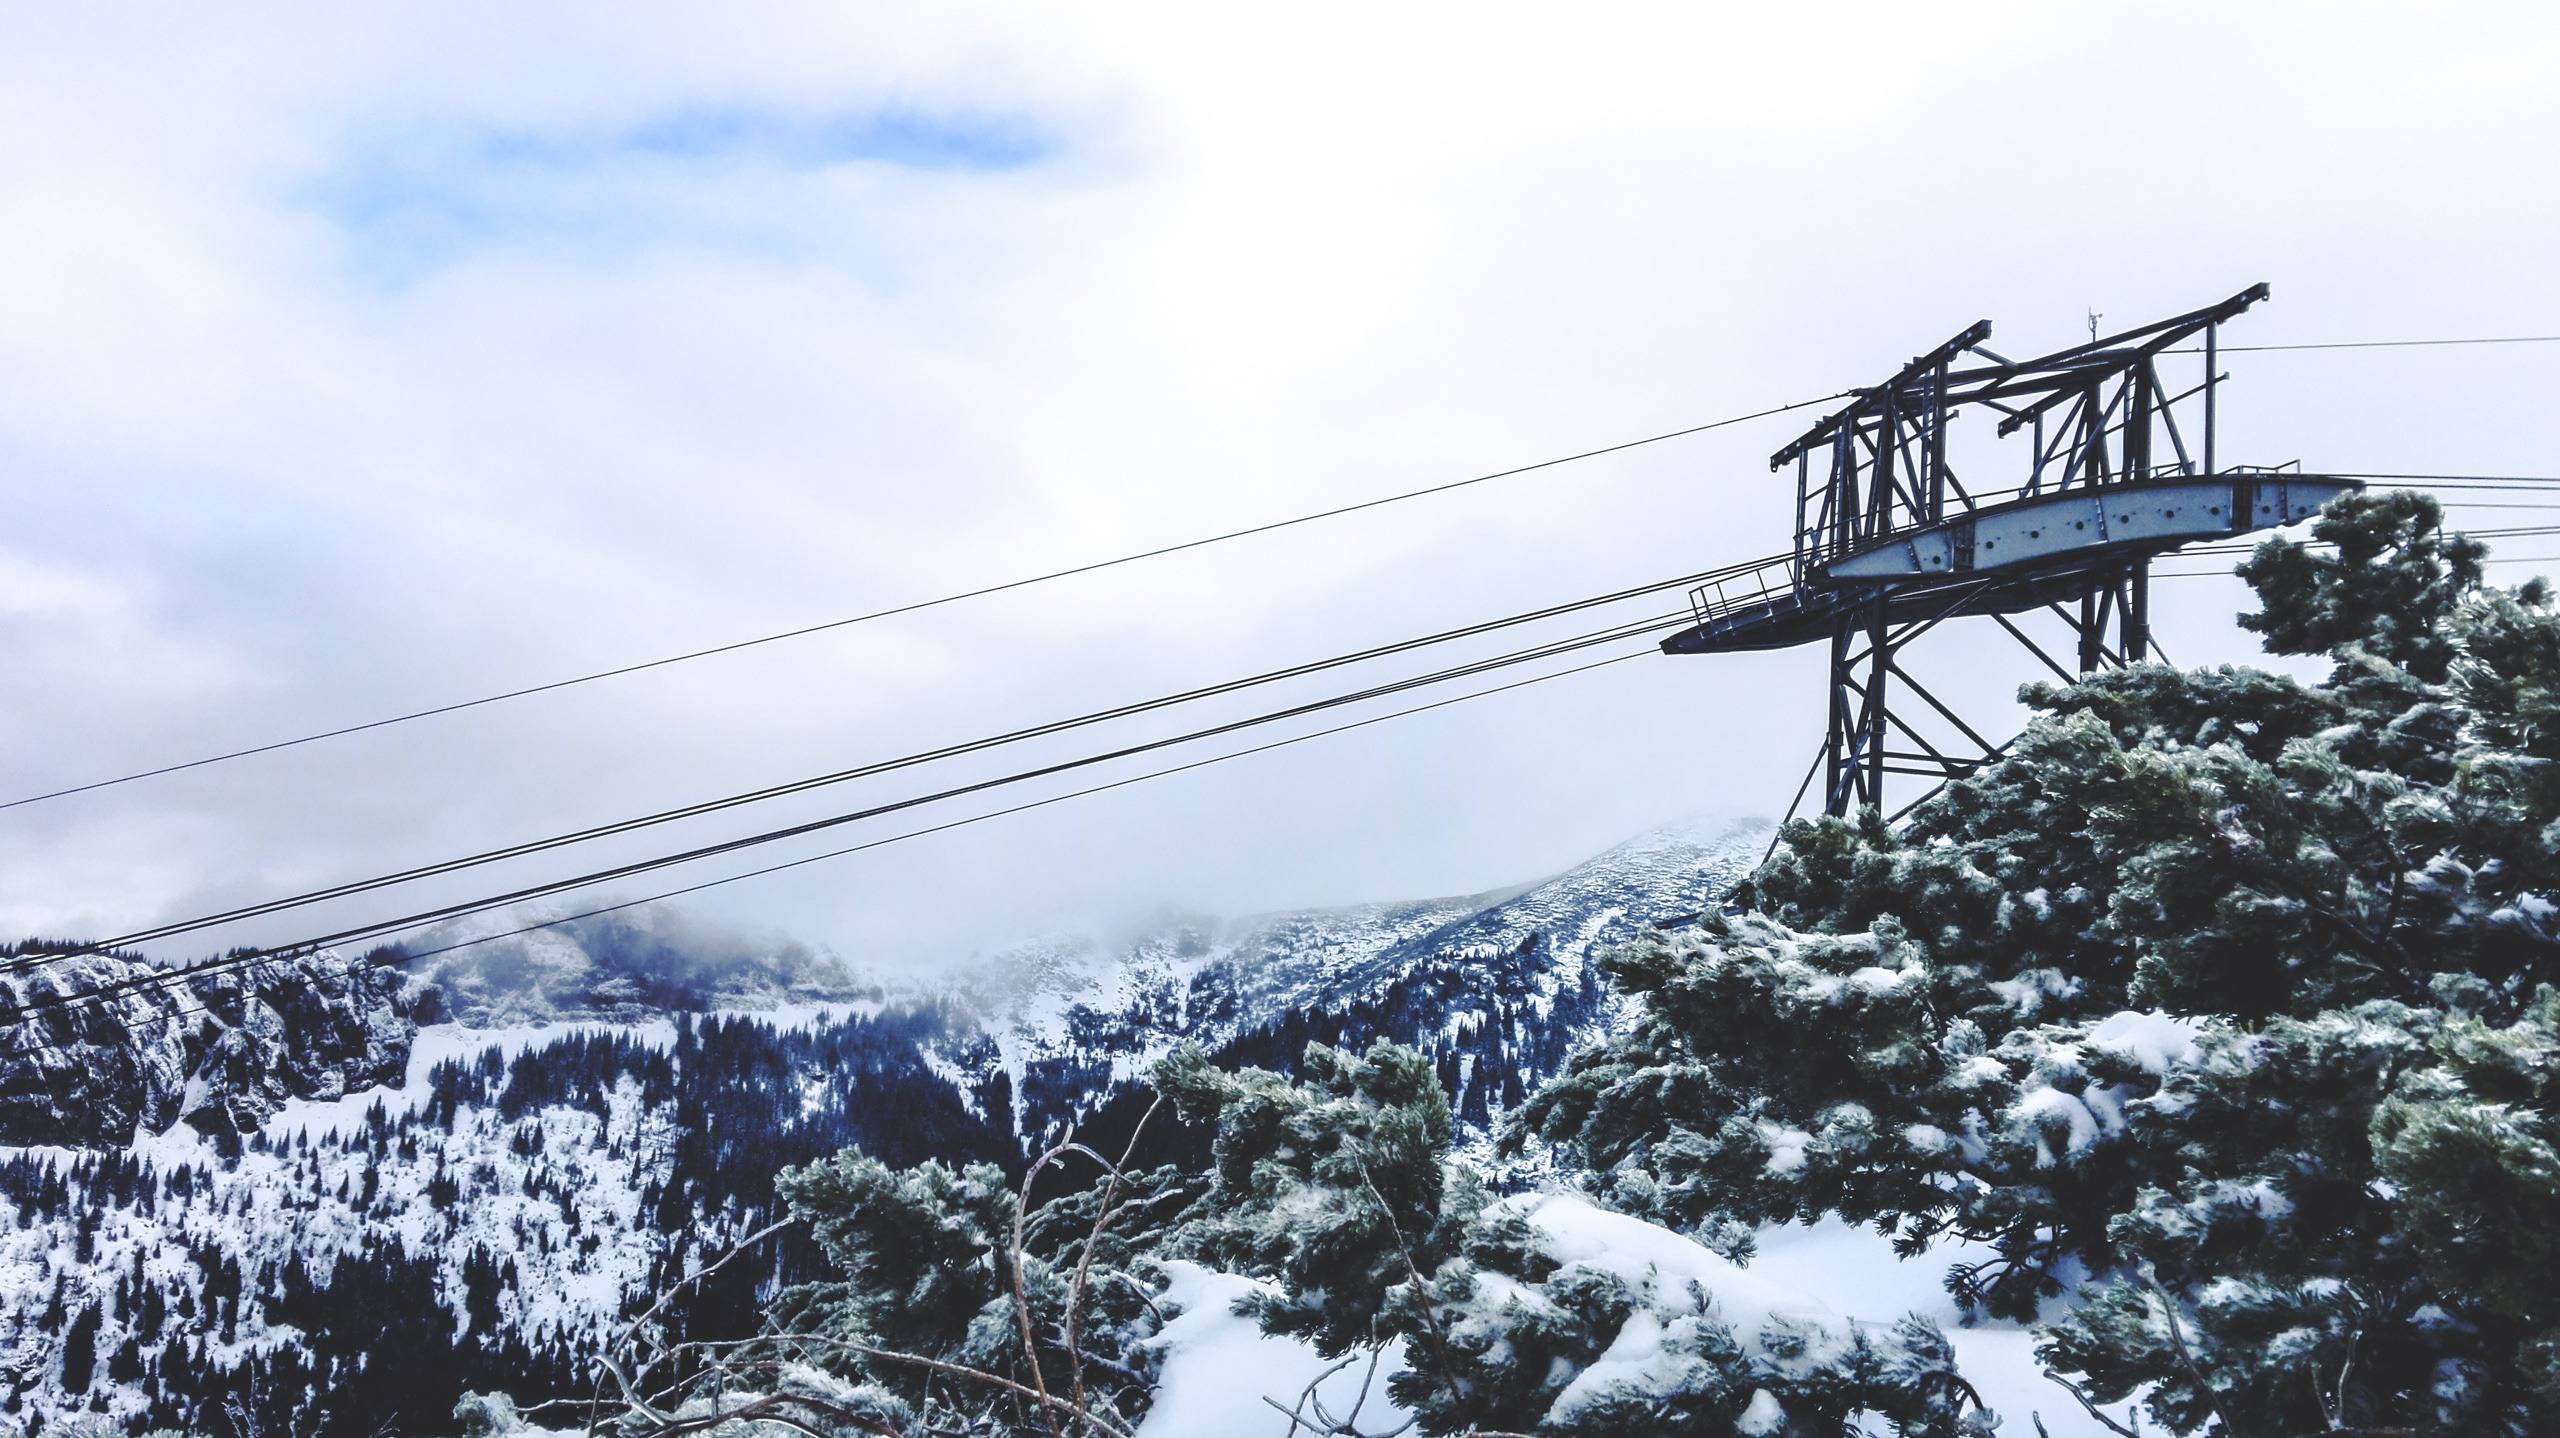 Queues to Kuźnice – Kasprowy Wierch cable car takes about the same time as to climb the mountain yourself. Photo by Alis Monte [CC BY-SA 4.0], via Connecting the Dots